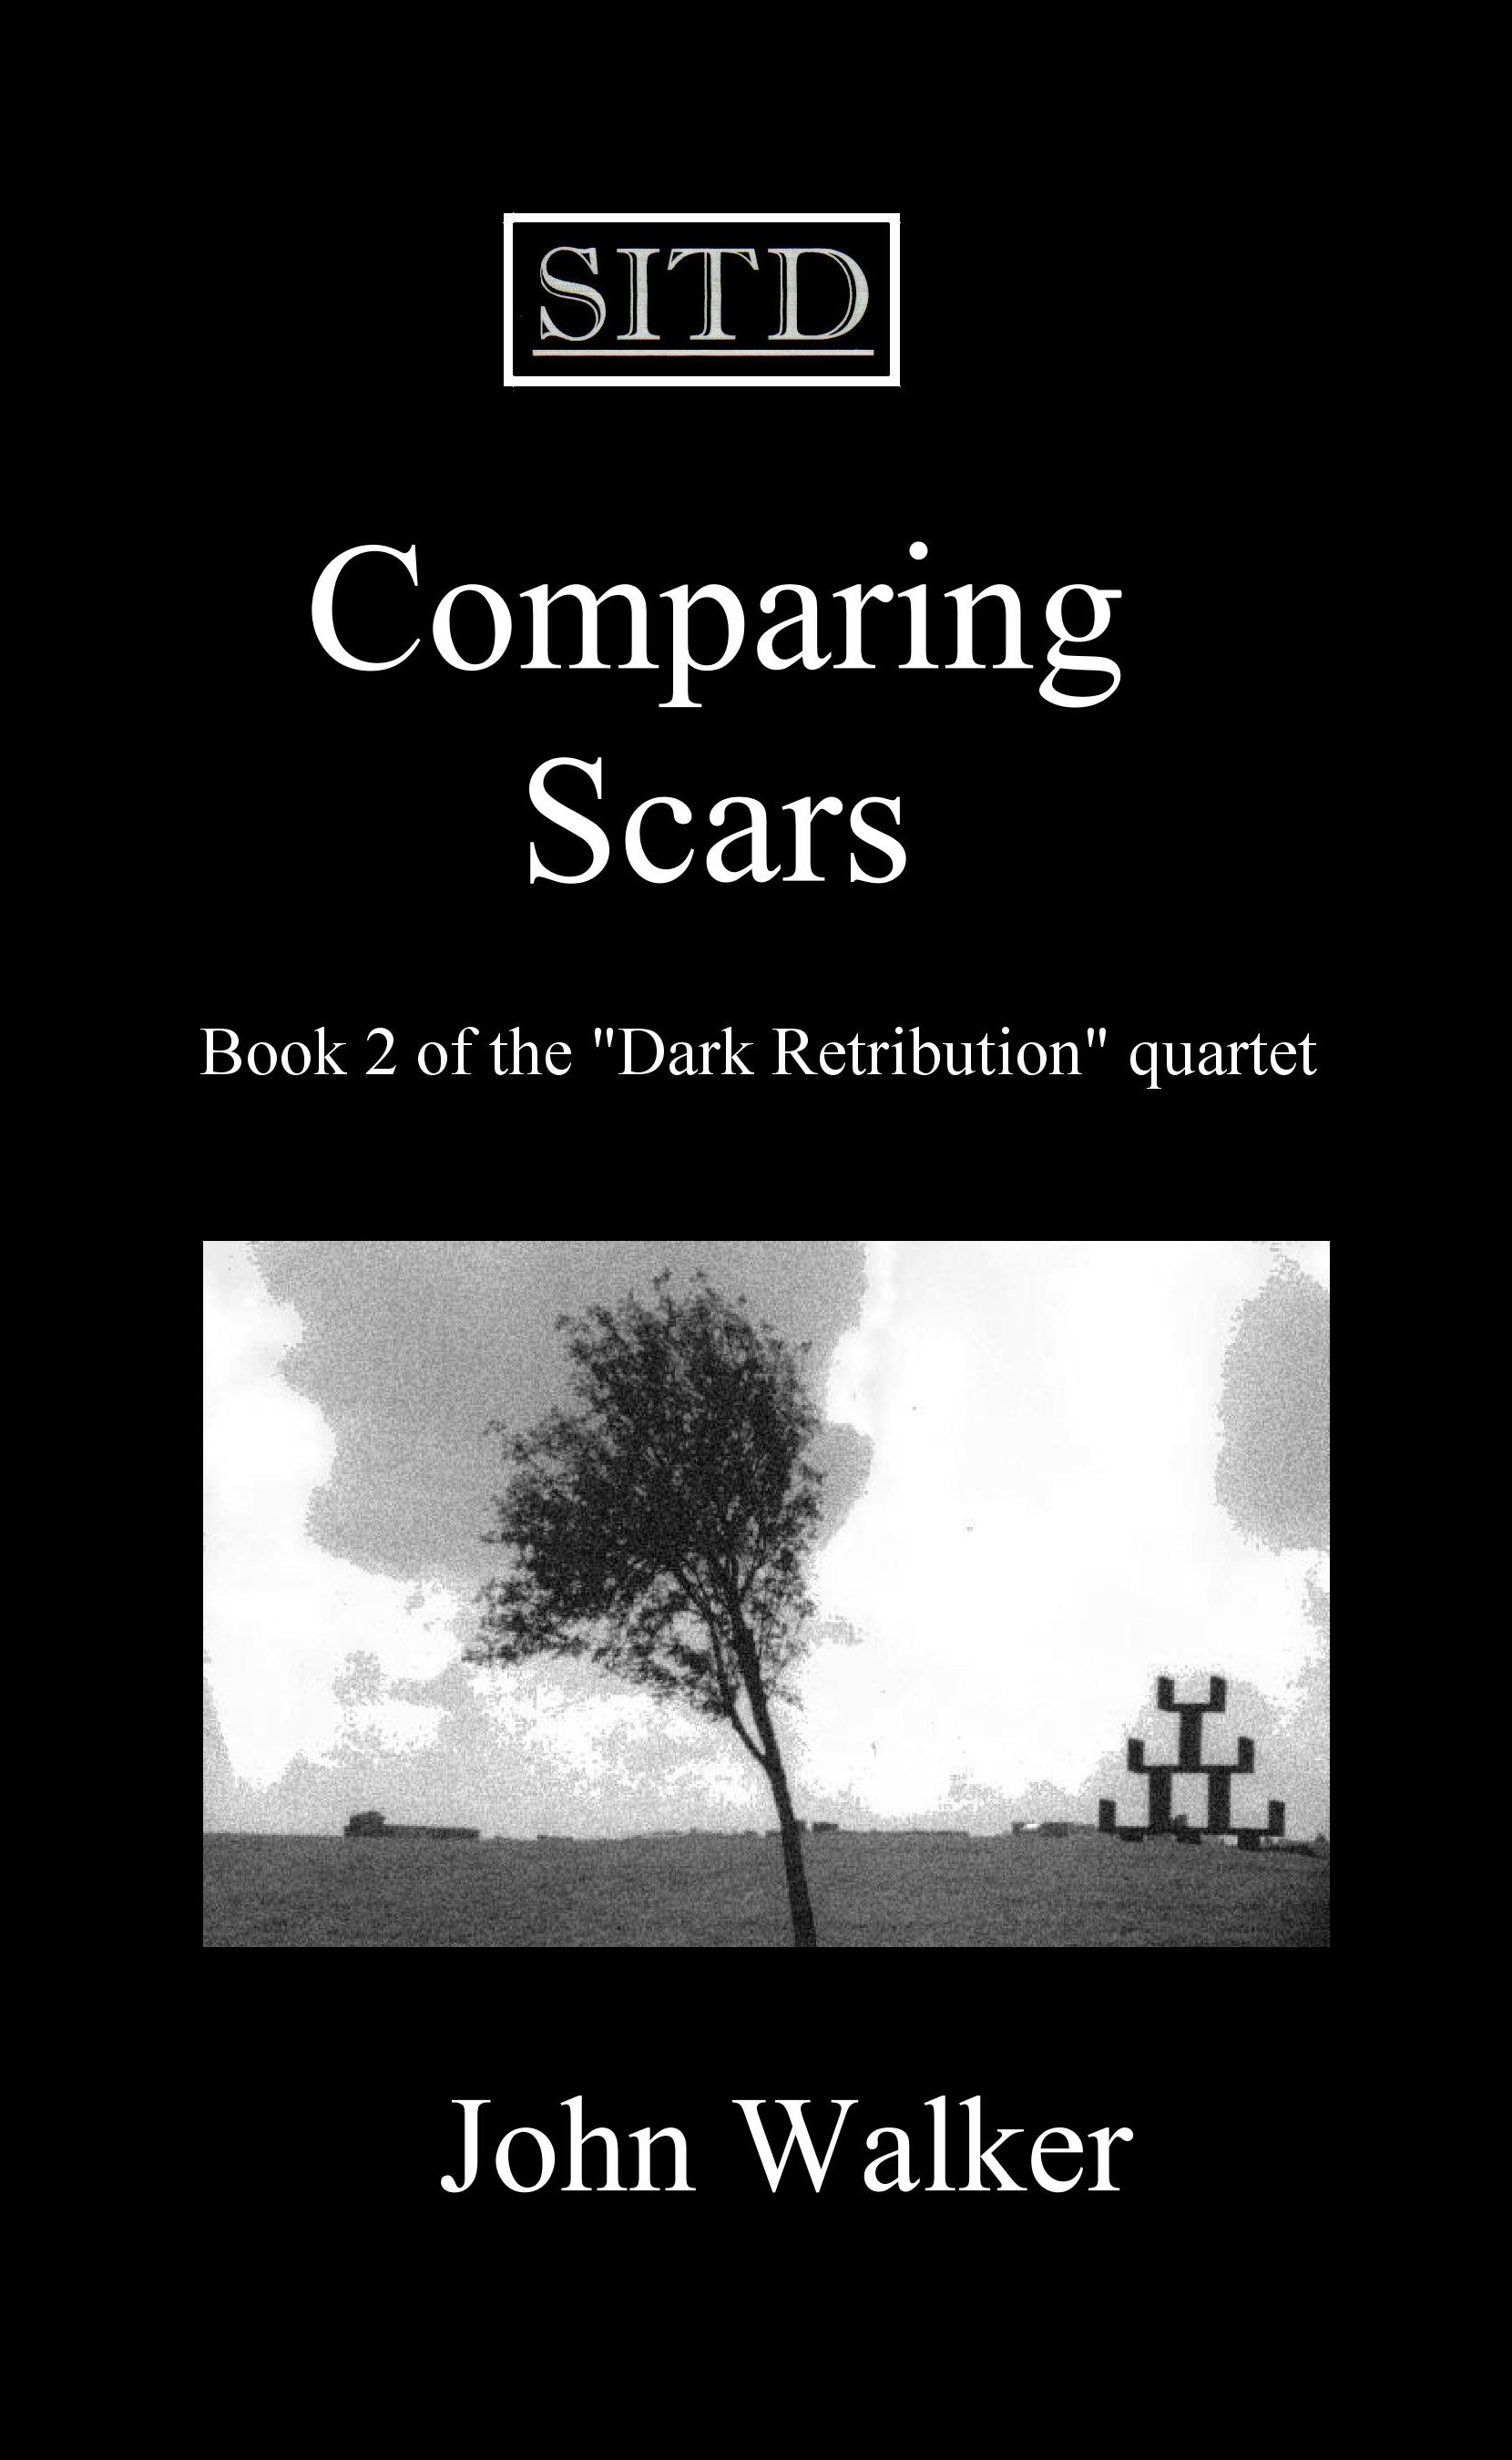 Comparing Scars